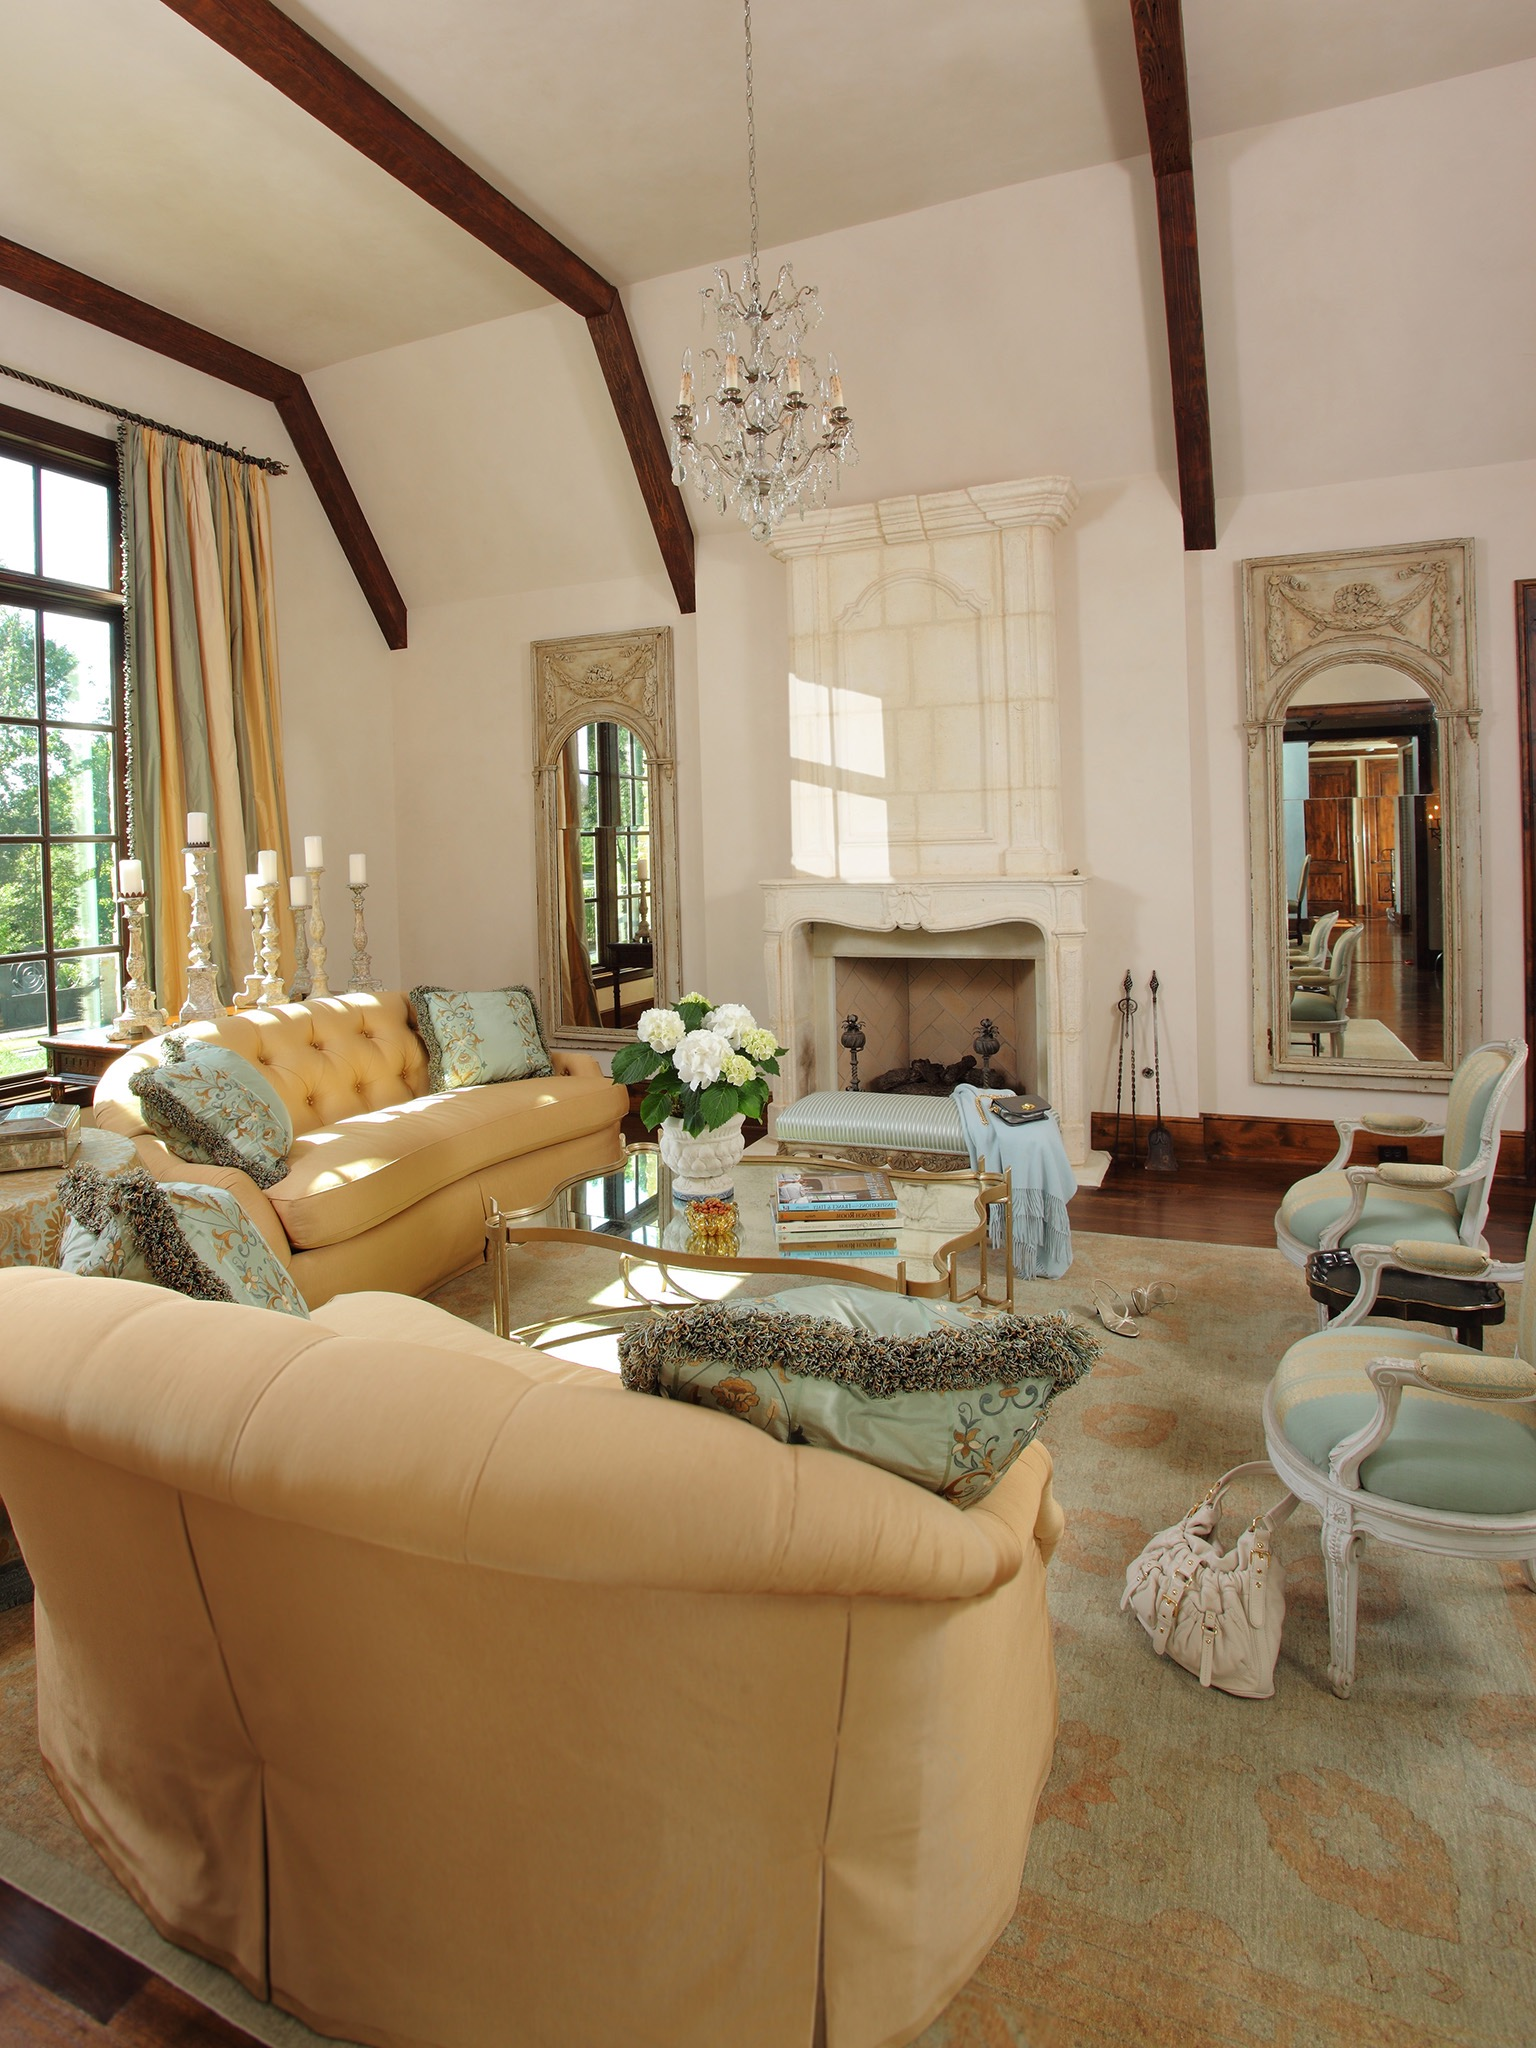 Italian Living Room Design: Living Room: 20 Elegant Italian Living Room Interior